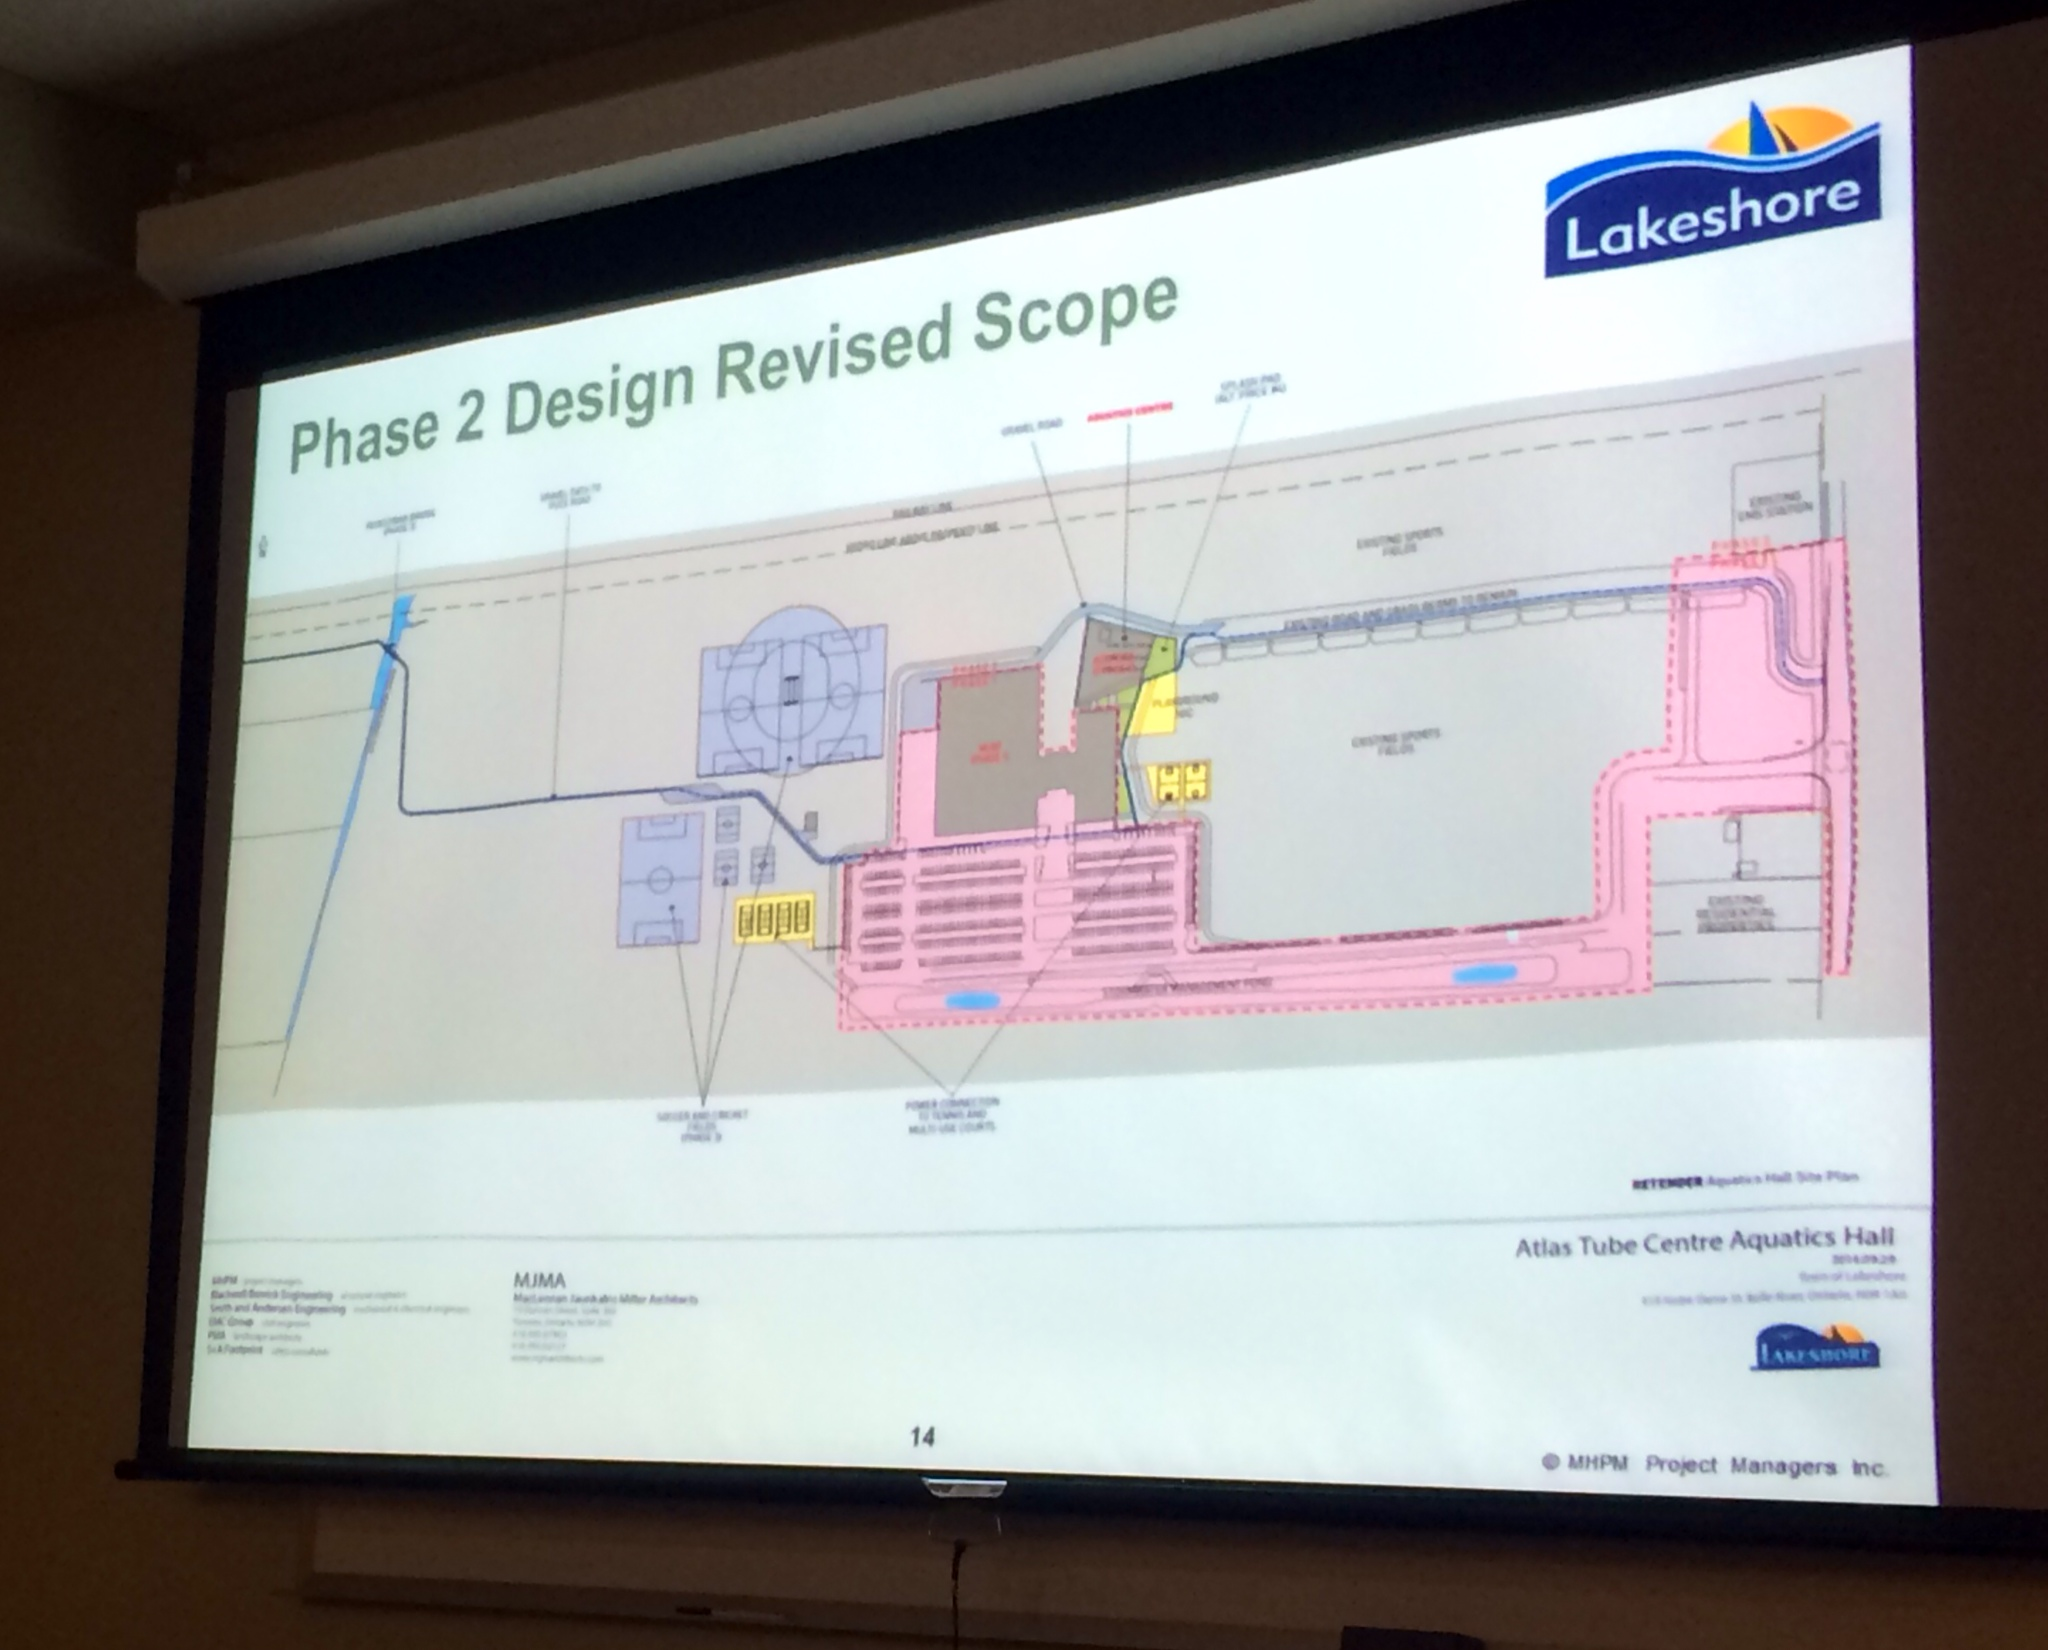 Lakeshore Approves Next Phase Spending